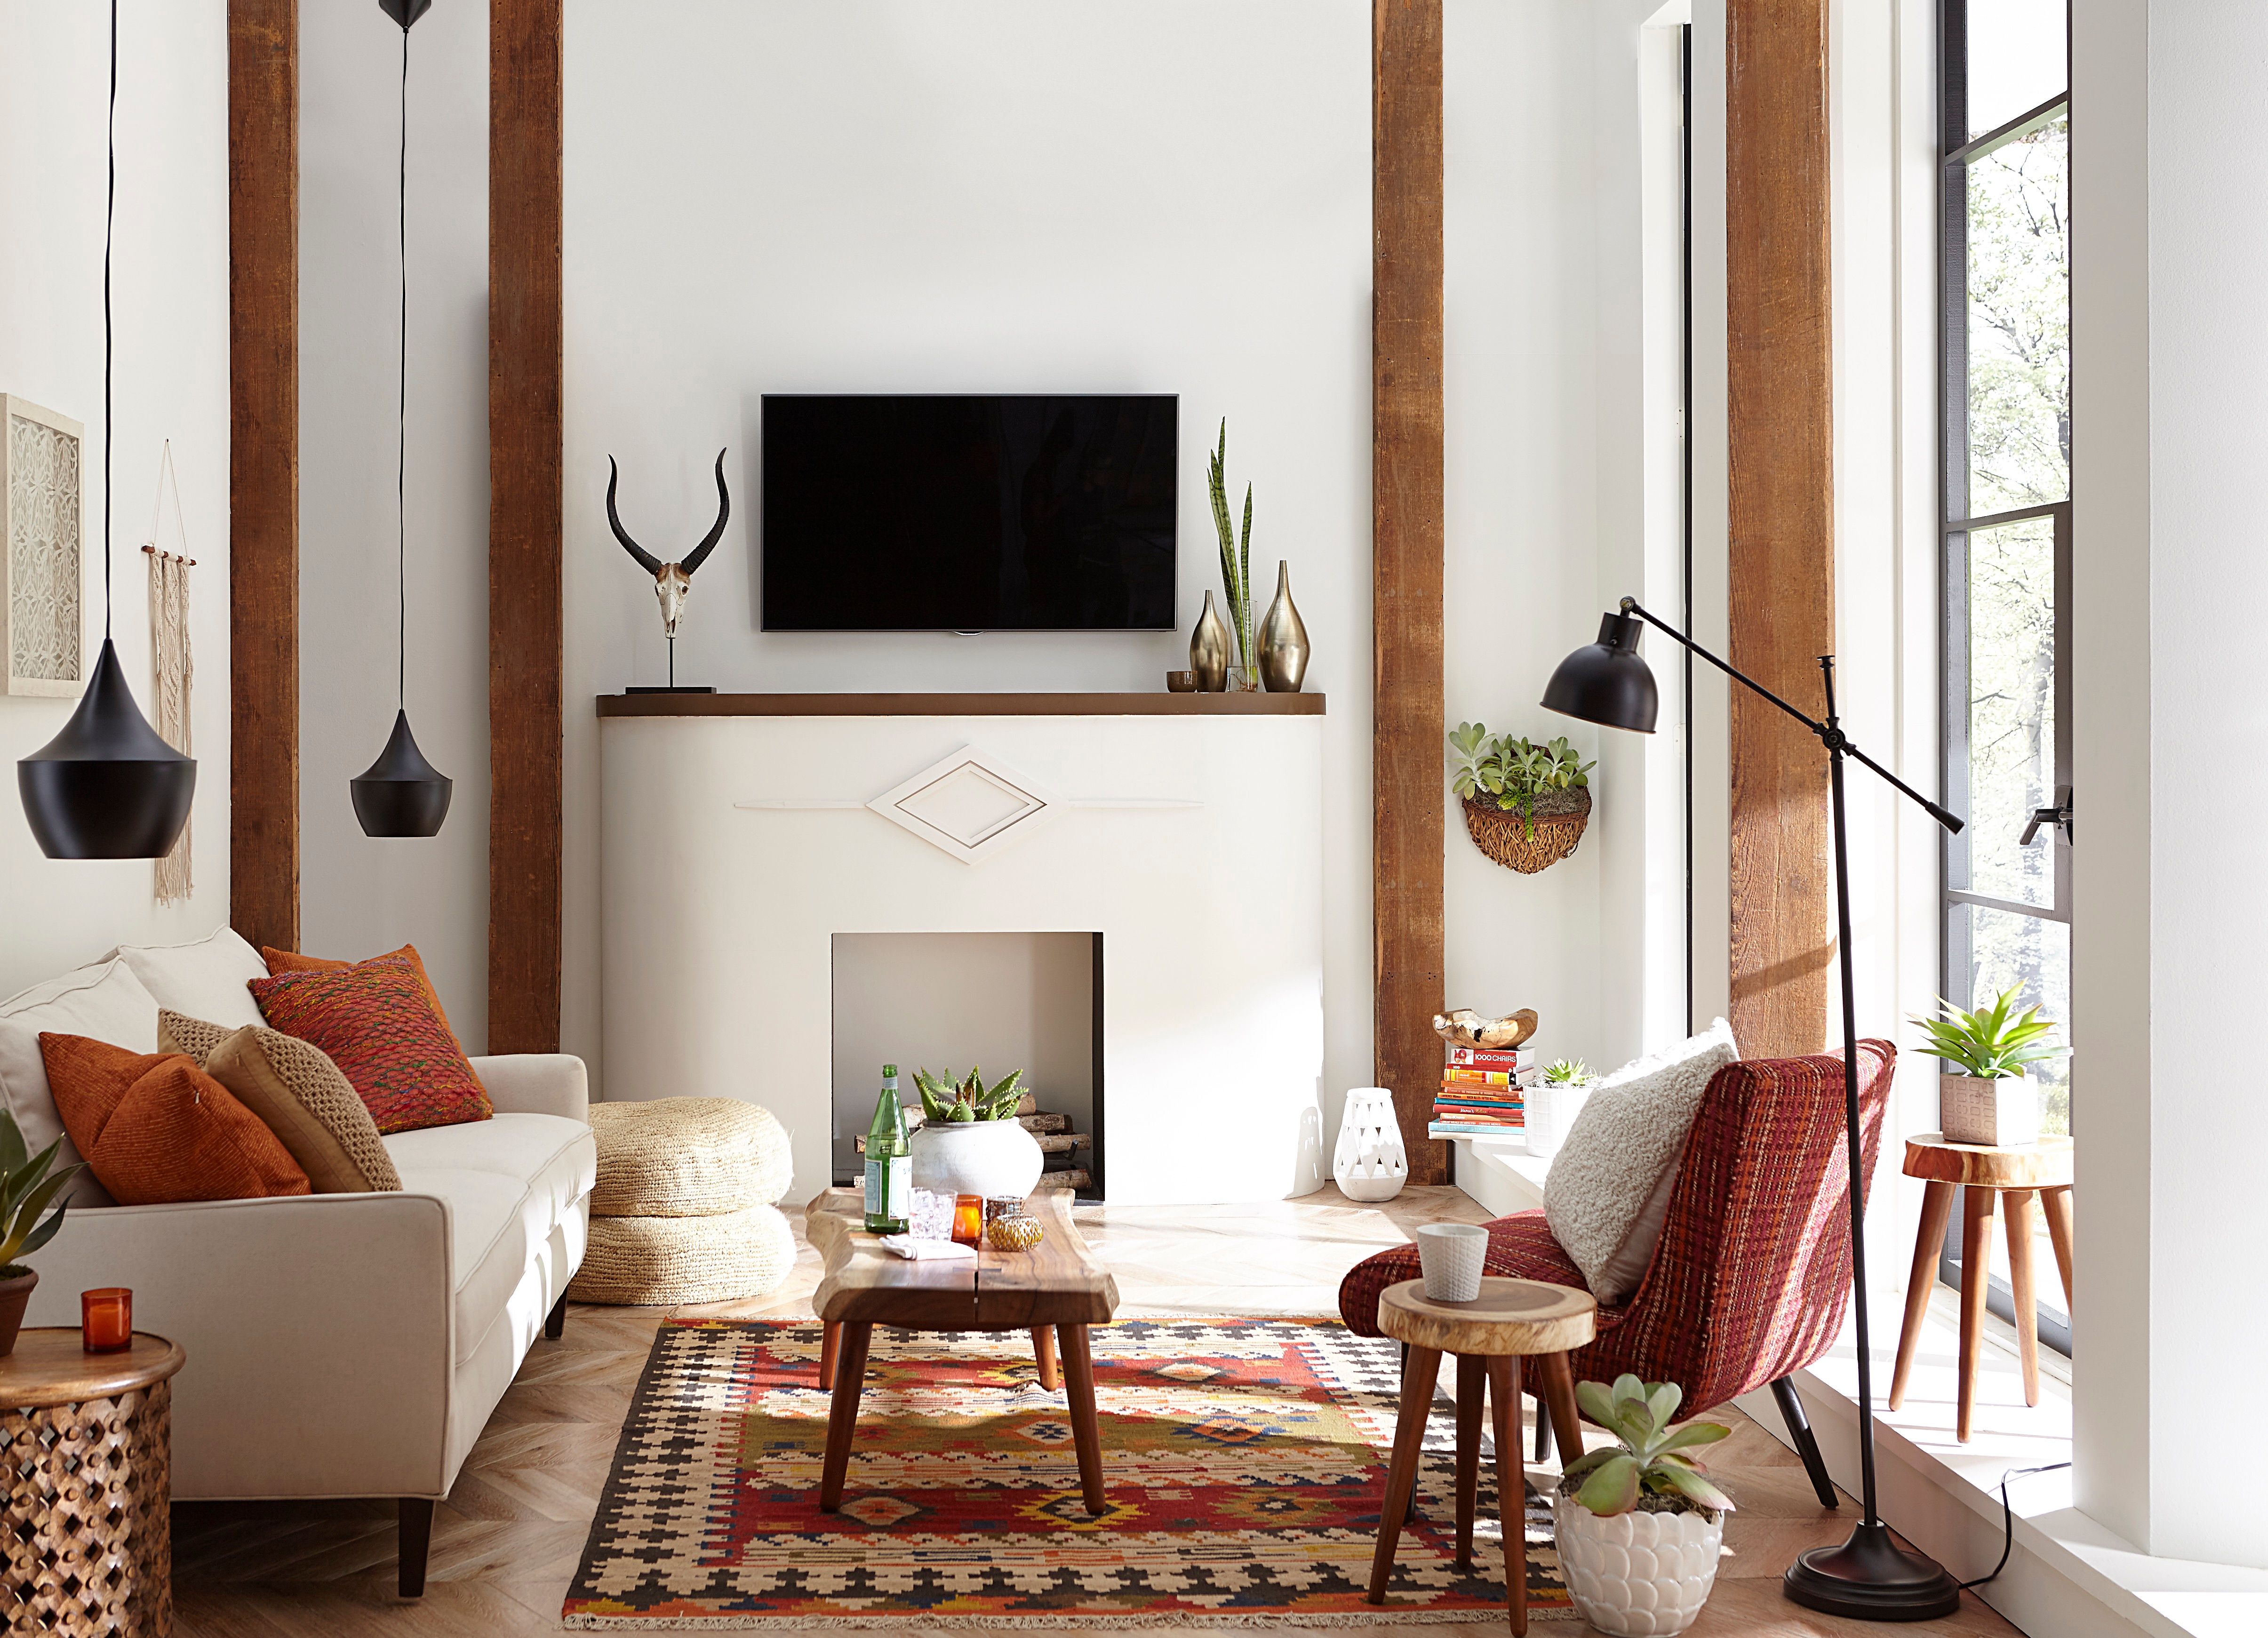 TV Mounted Above a Fireplace